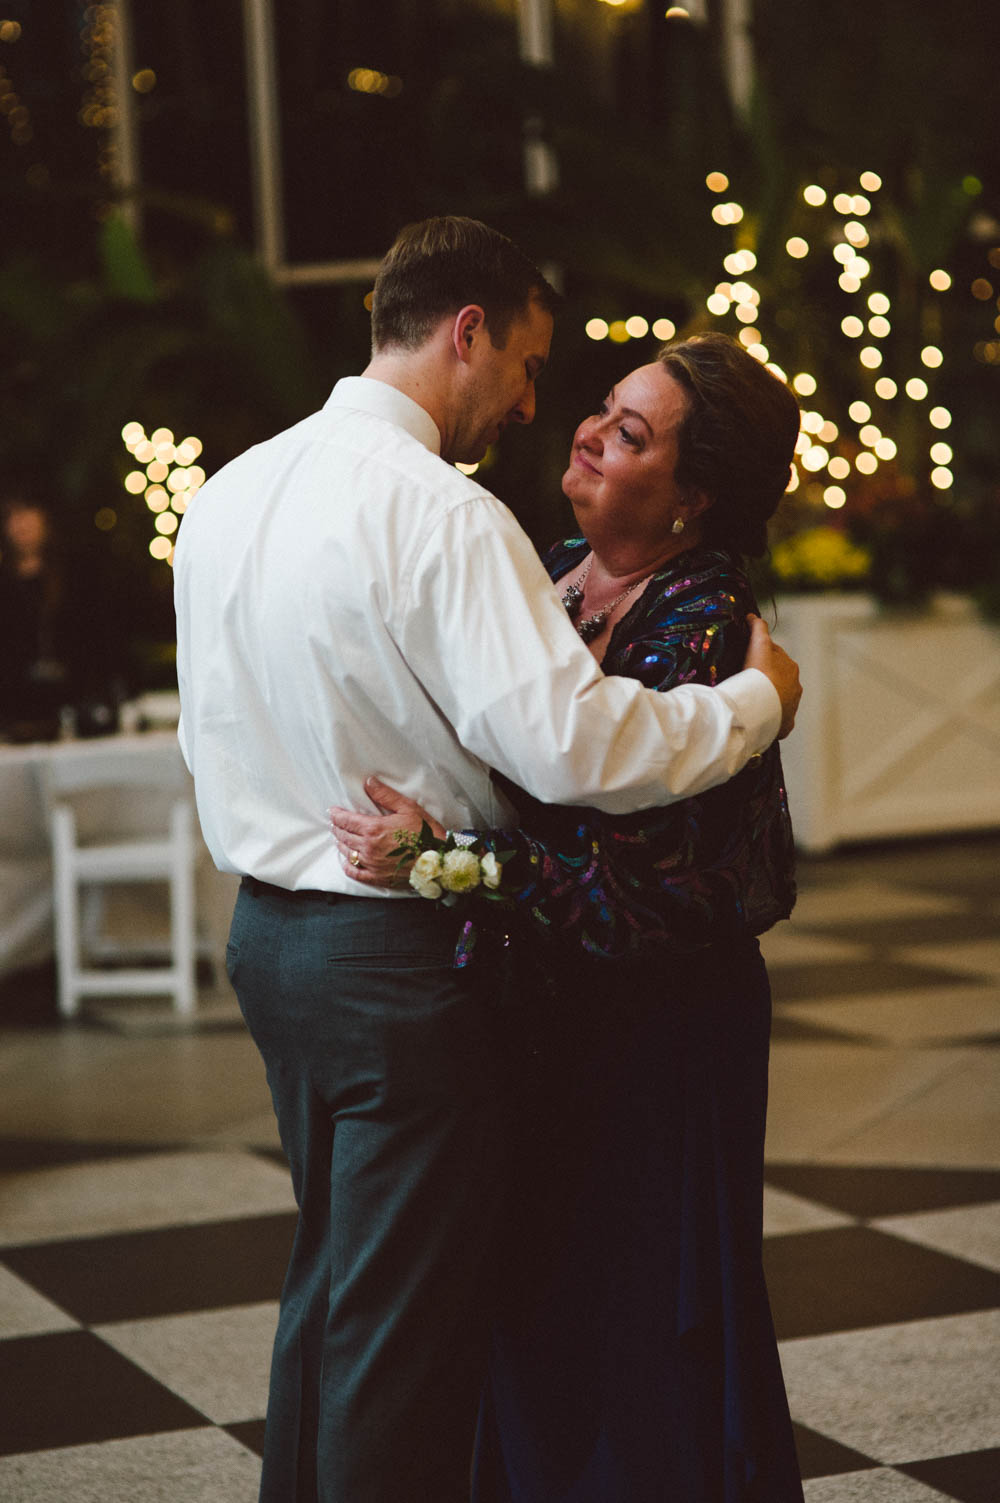 wintergarden-wedding-pittsburgh-141.jpg